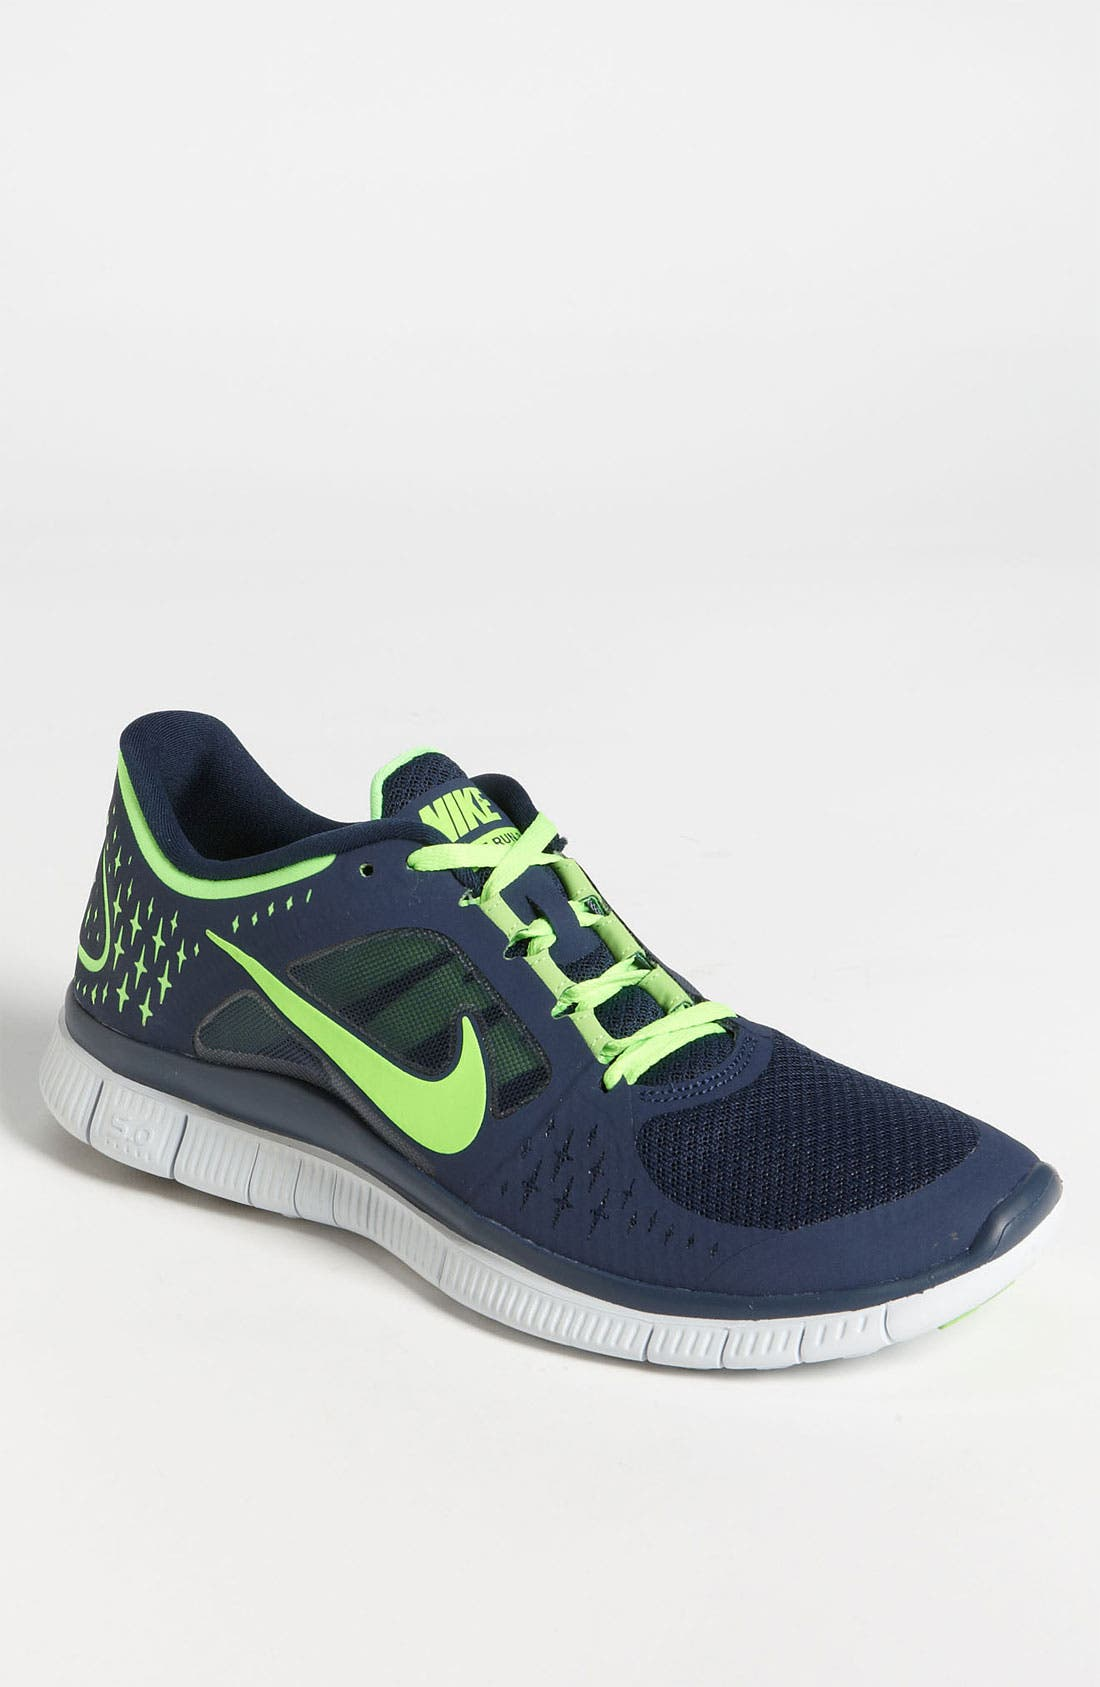 Alternate Image 1 Selected - Nike 'Free Run+ 3' Running Shoe (Men)